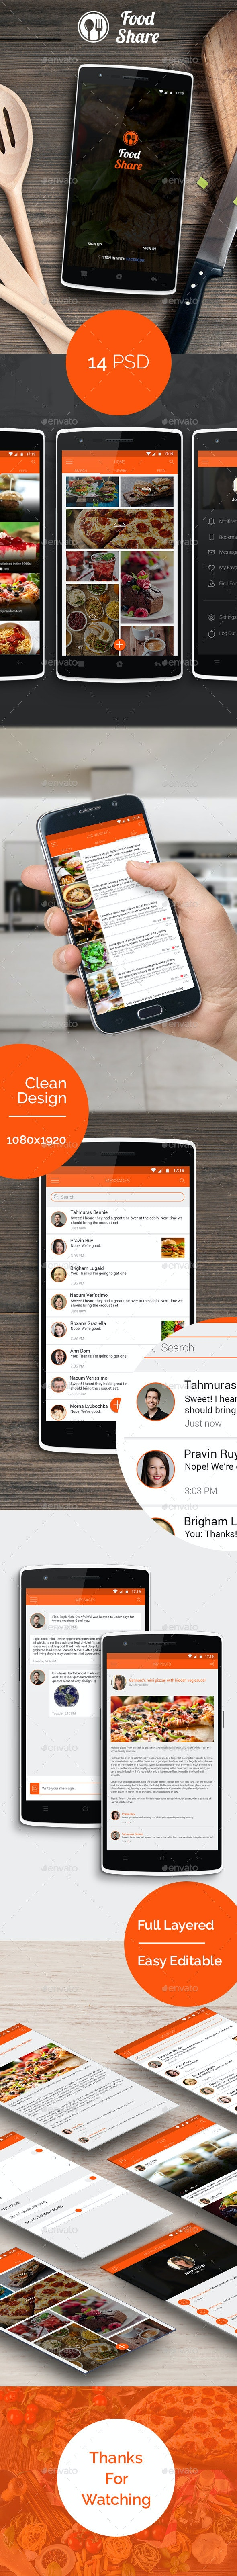 Food Share - Food App Template UI - User Interfaces Web Elements